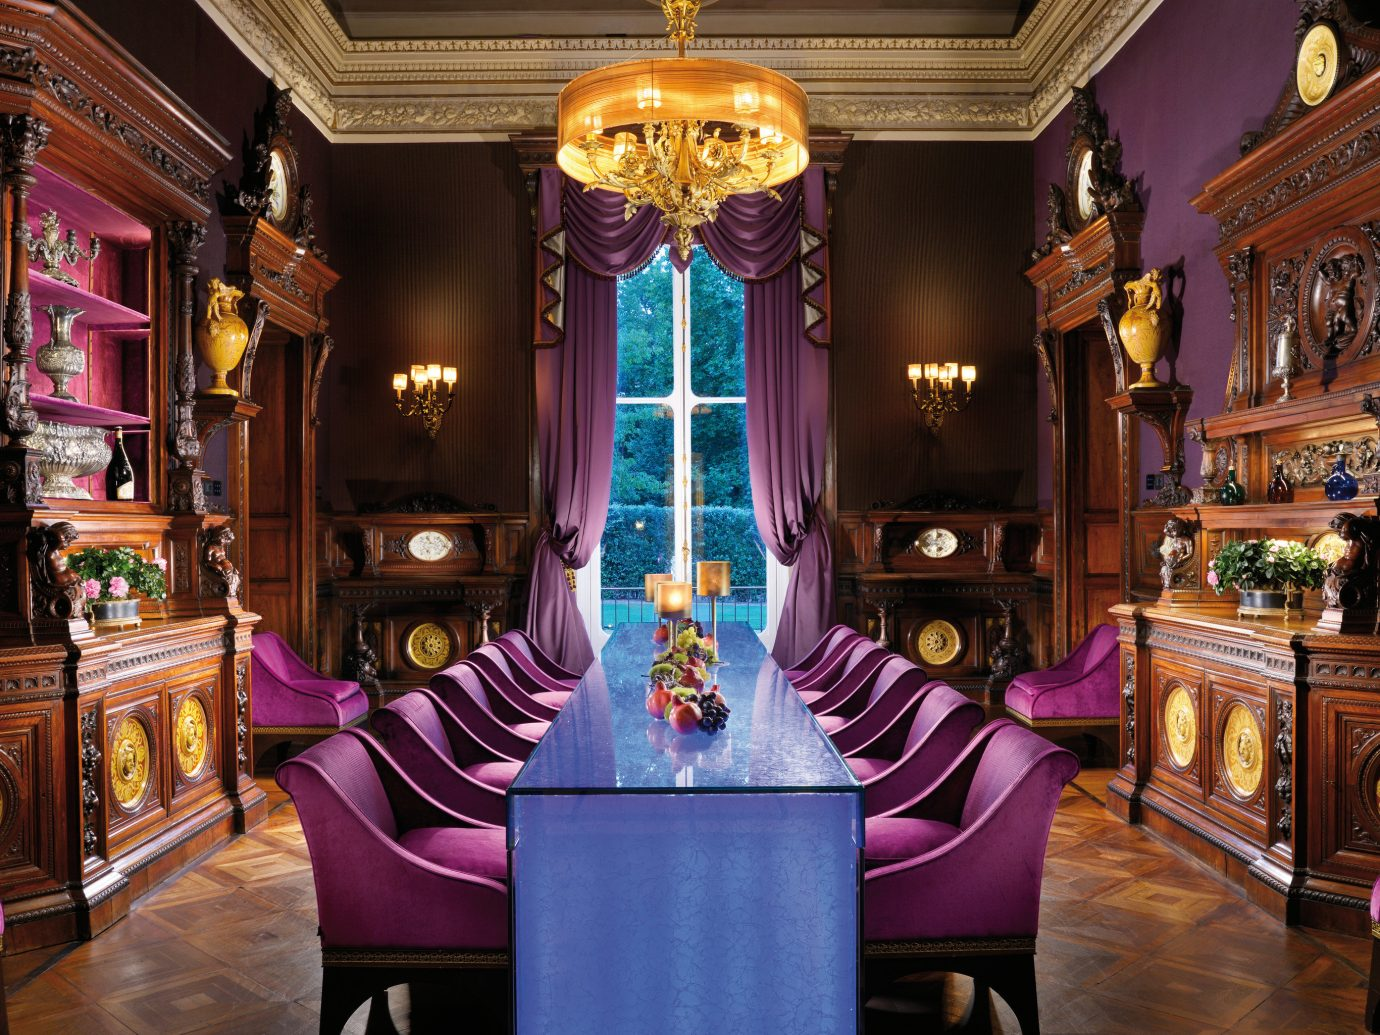 Florence Hotels Italy floor indoor building room Living purple tourist attraction interior design decorated furniture